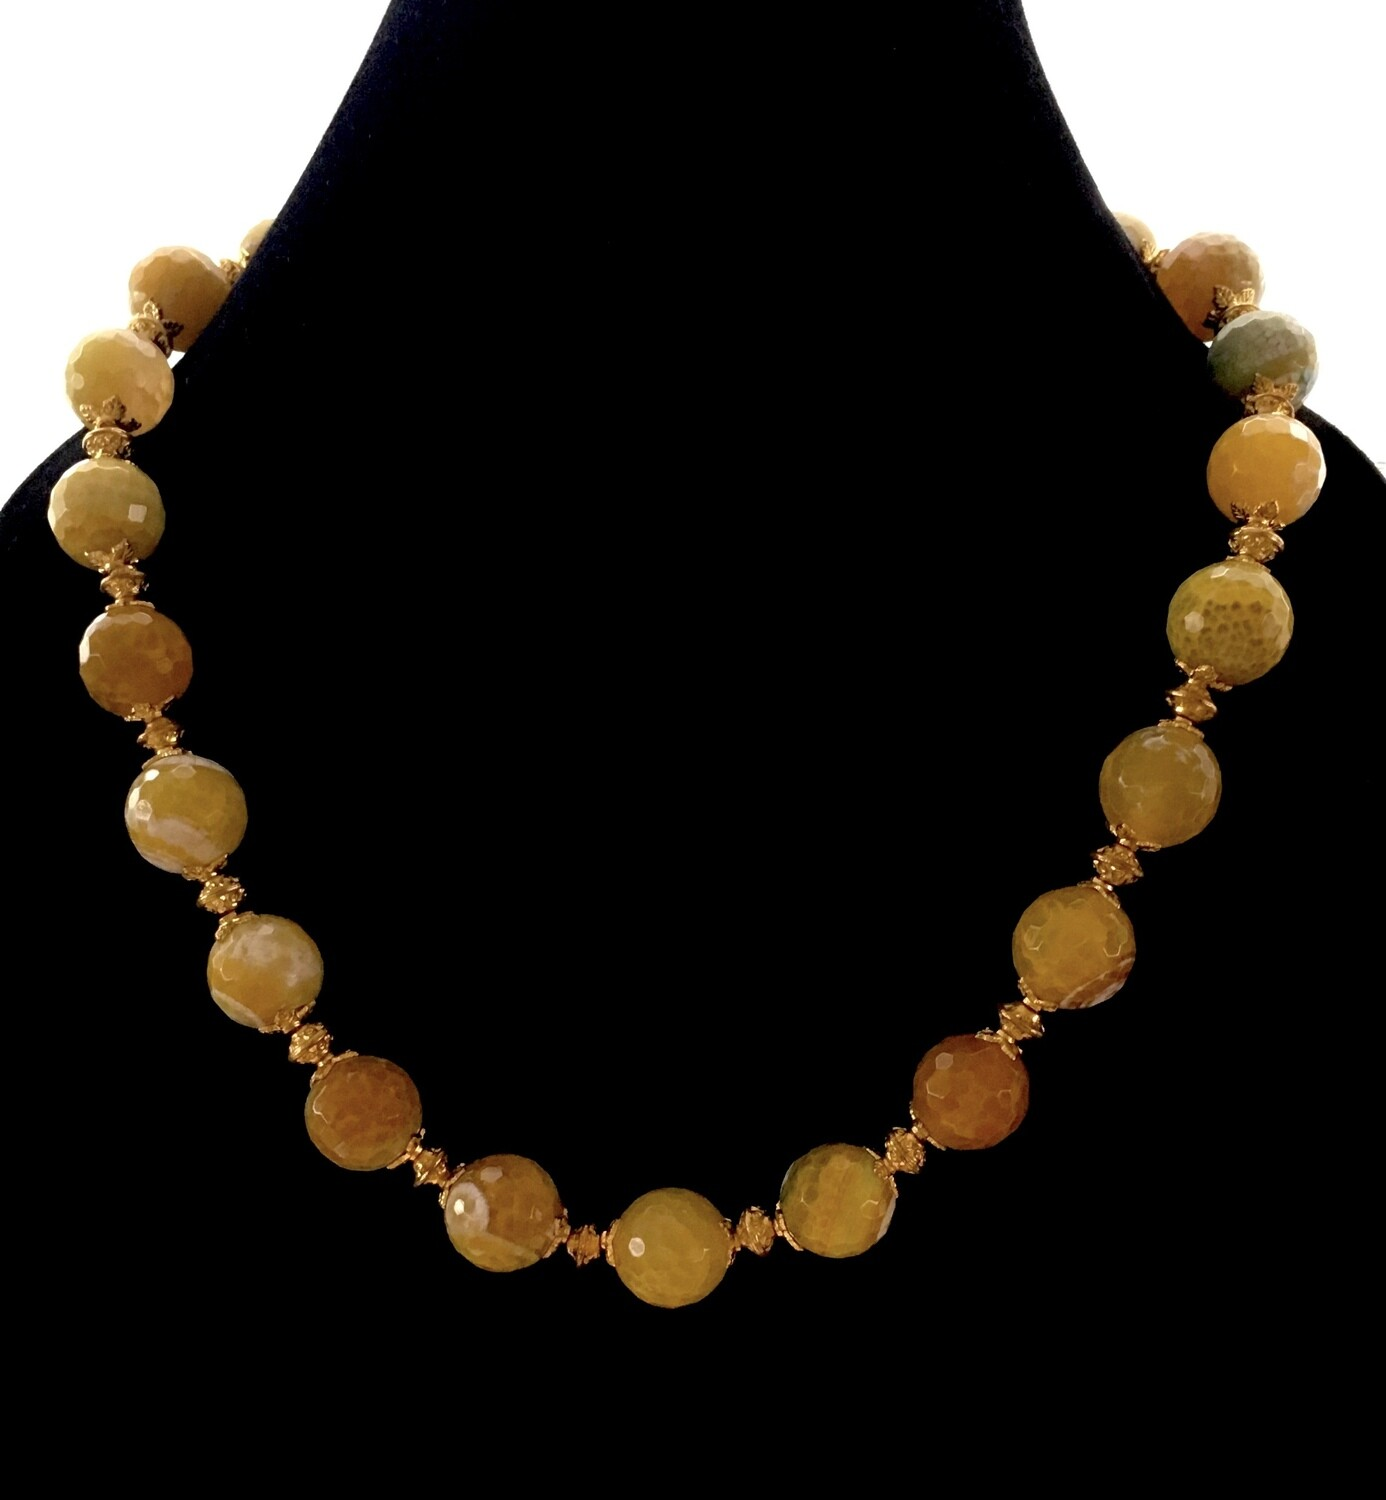 Ochre agate beads necklace